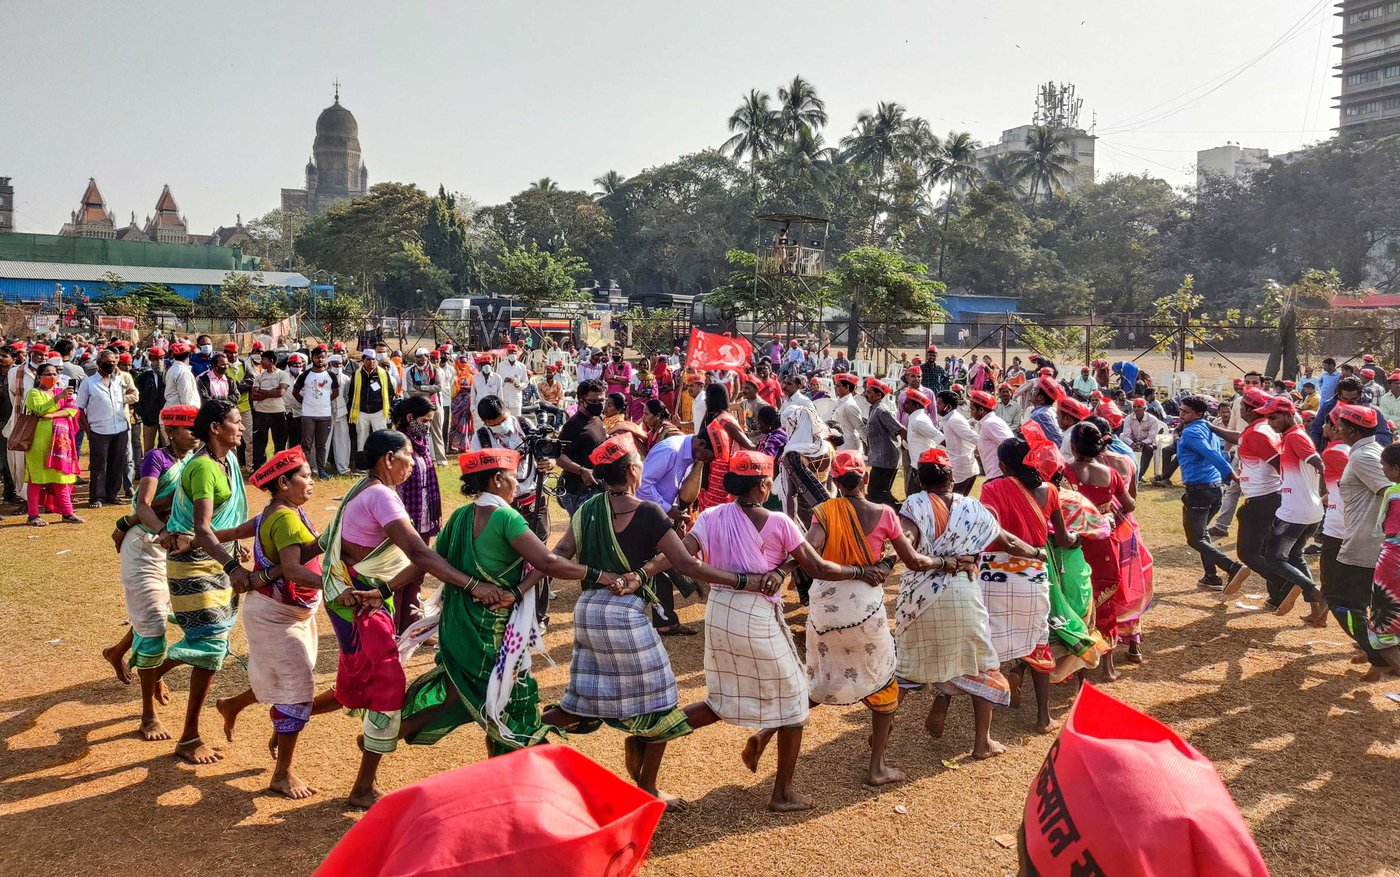 At Mumbai's Azad Maidan, at a farmers' protest in late January, dhumsi and tarpa players from Adivasi communities in Maharashtra's Dahanu taluka opposed the new farm laws through song and dance